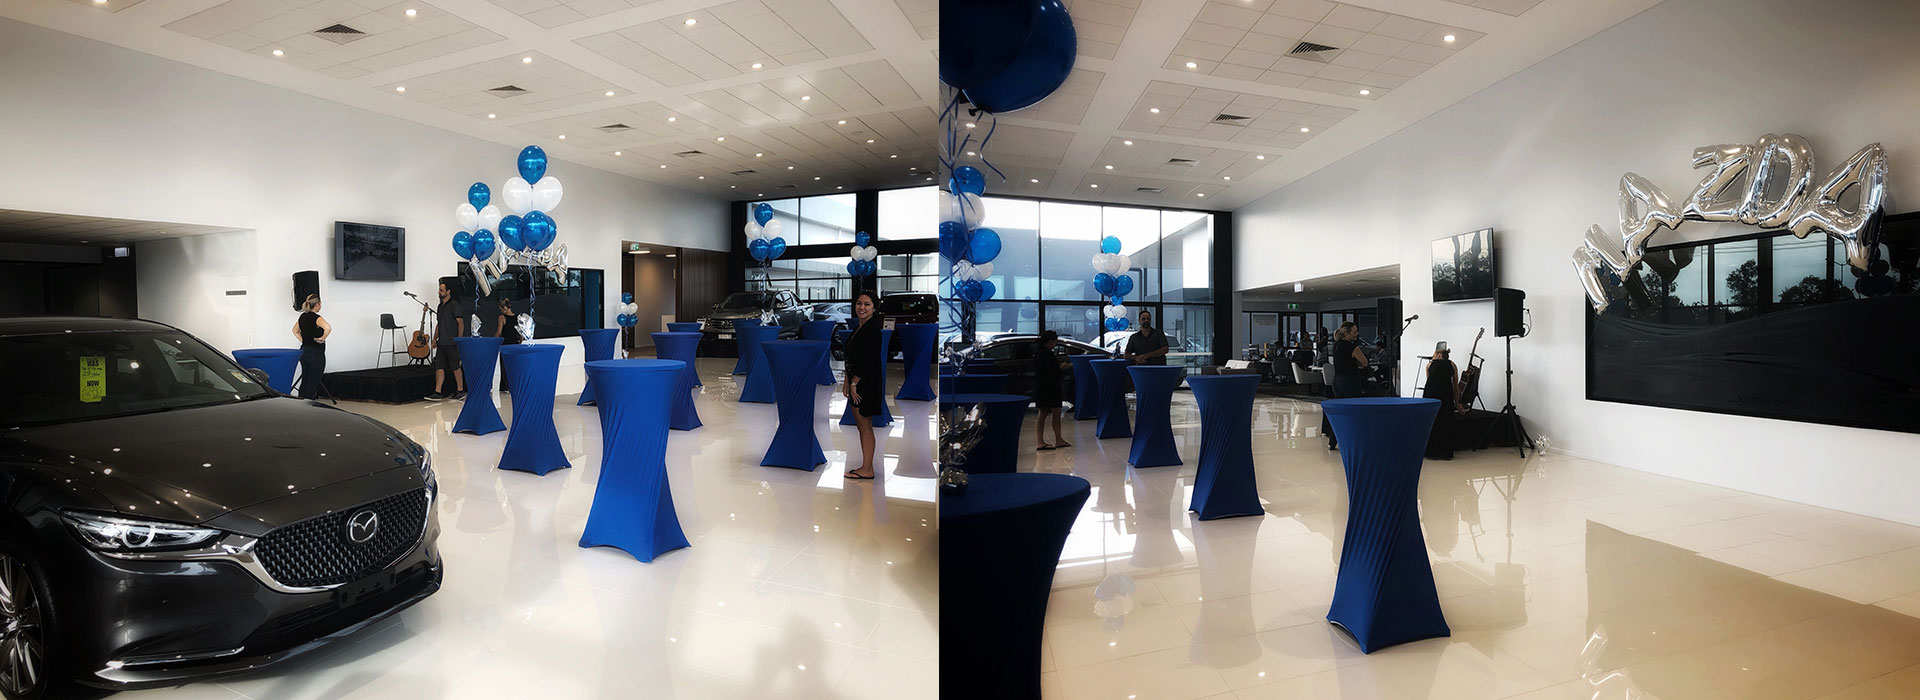 bespoke-mazda-facility-launch-3